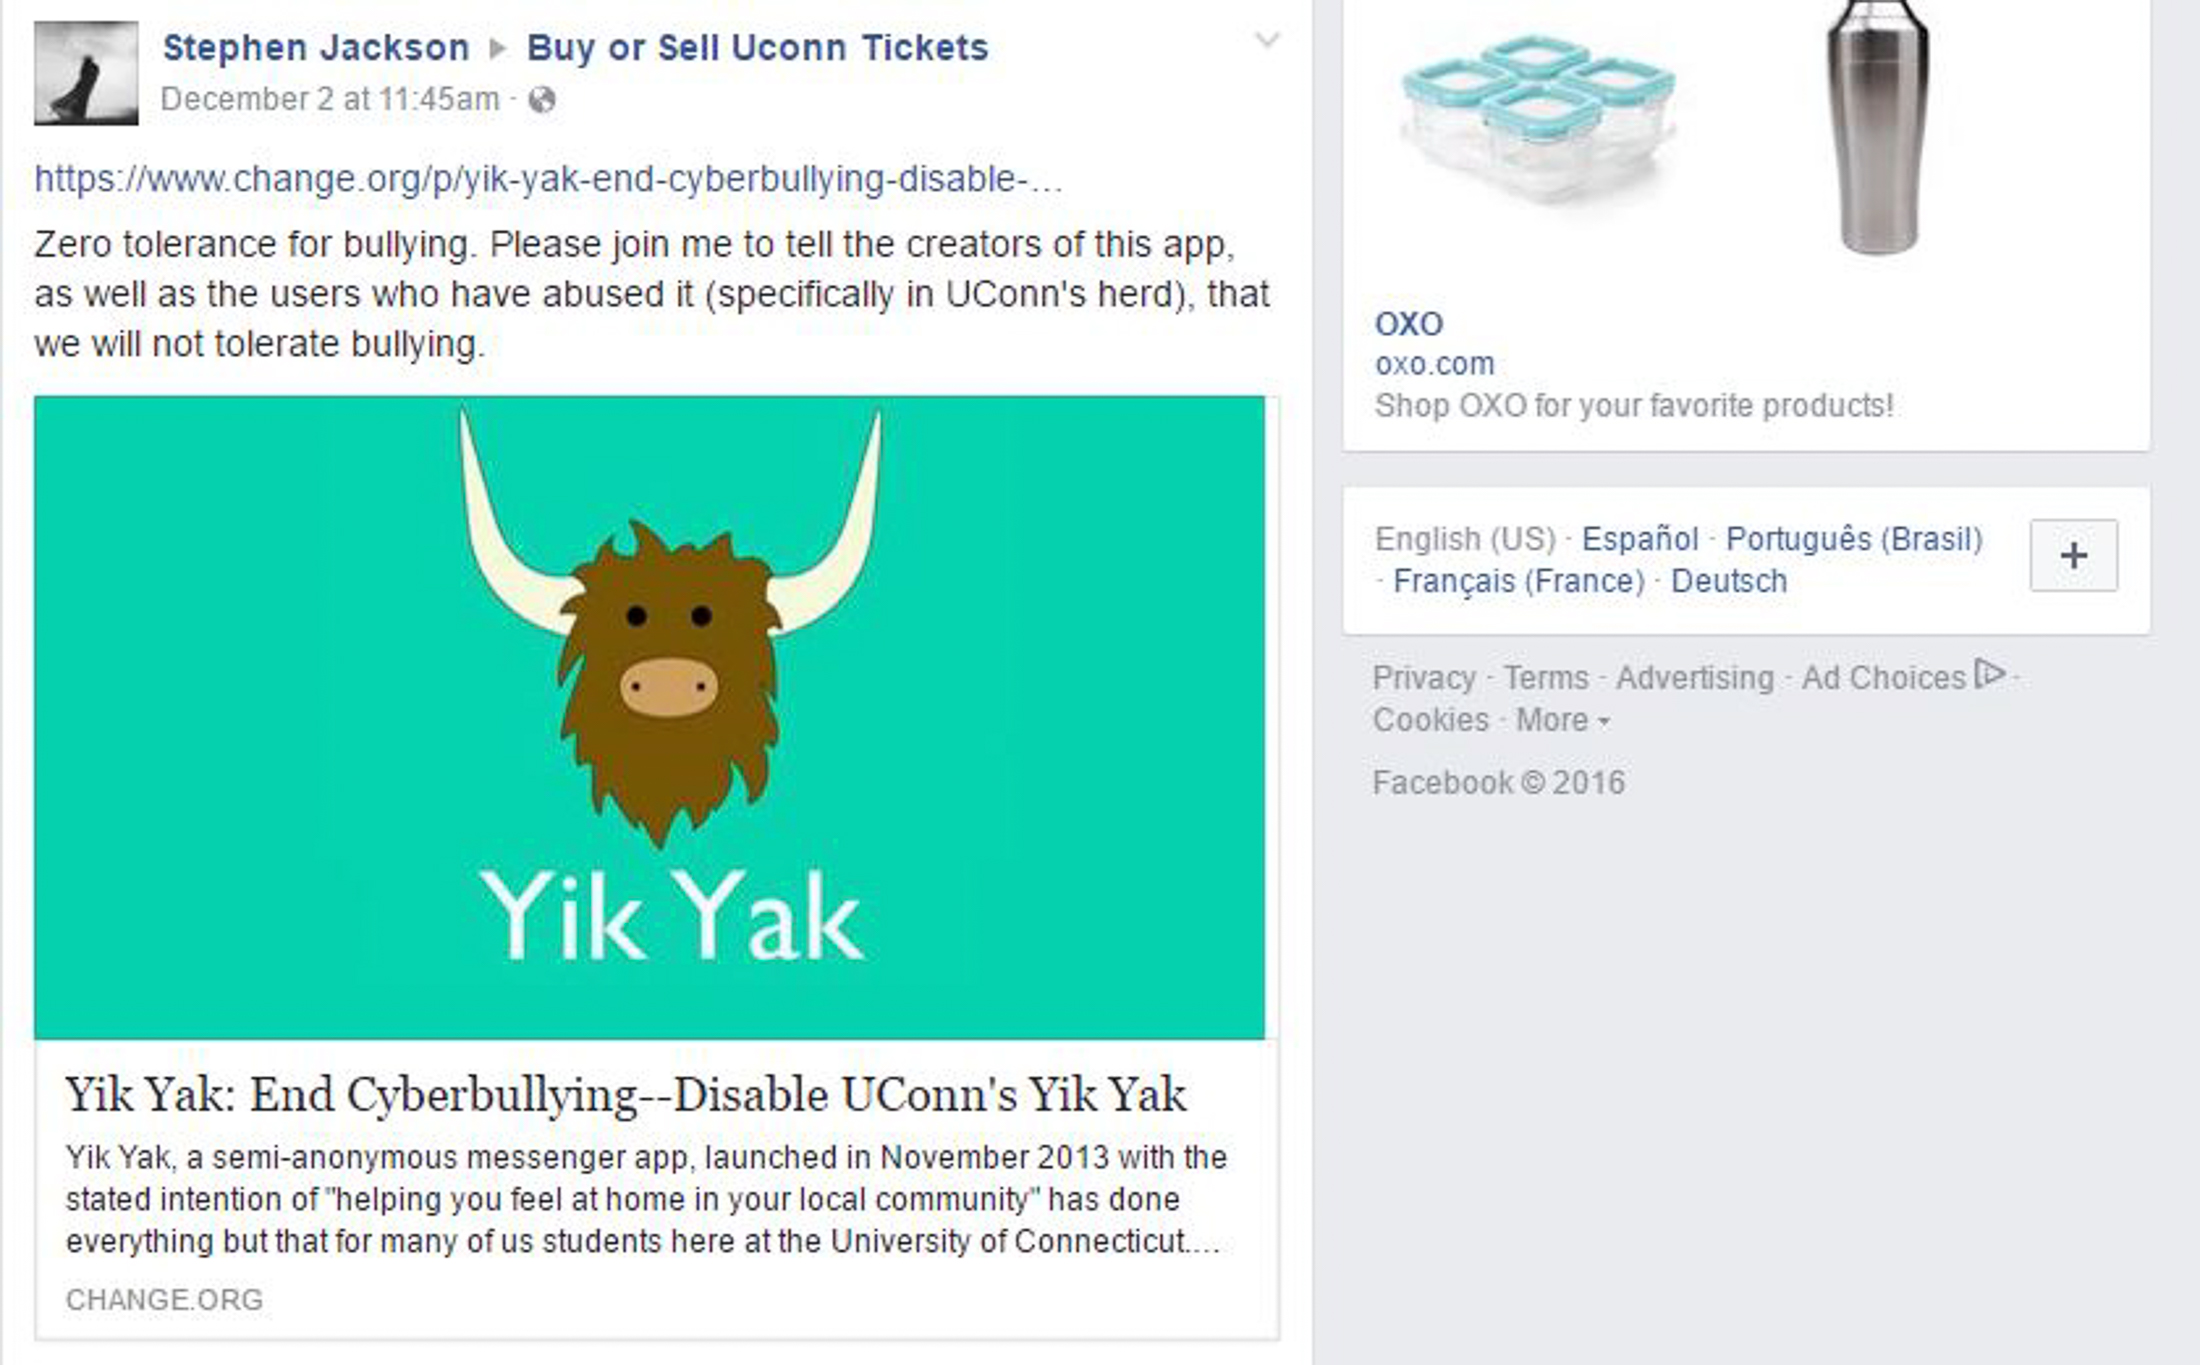 Petition to disable UConn's Yik Yak receives lukewarm